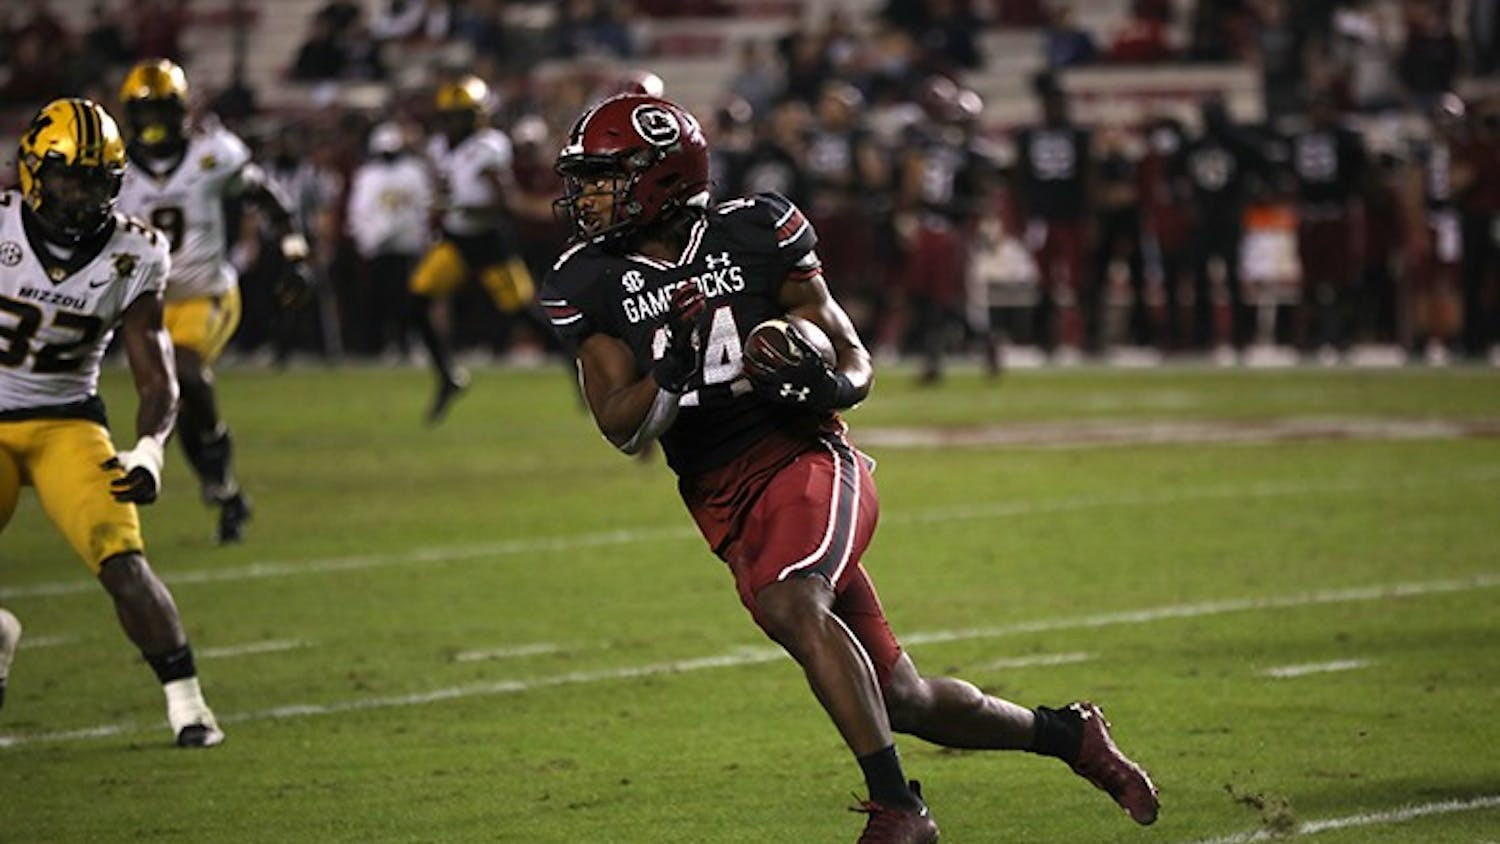 Redshirt sophomore running back Deshaun Fenwick looks downfield as he runs with the ball. The Gamecocks fell to the Missouri Tigers 17-10.